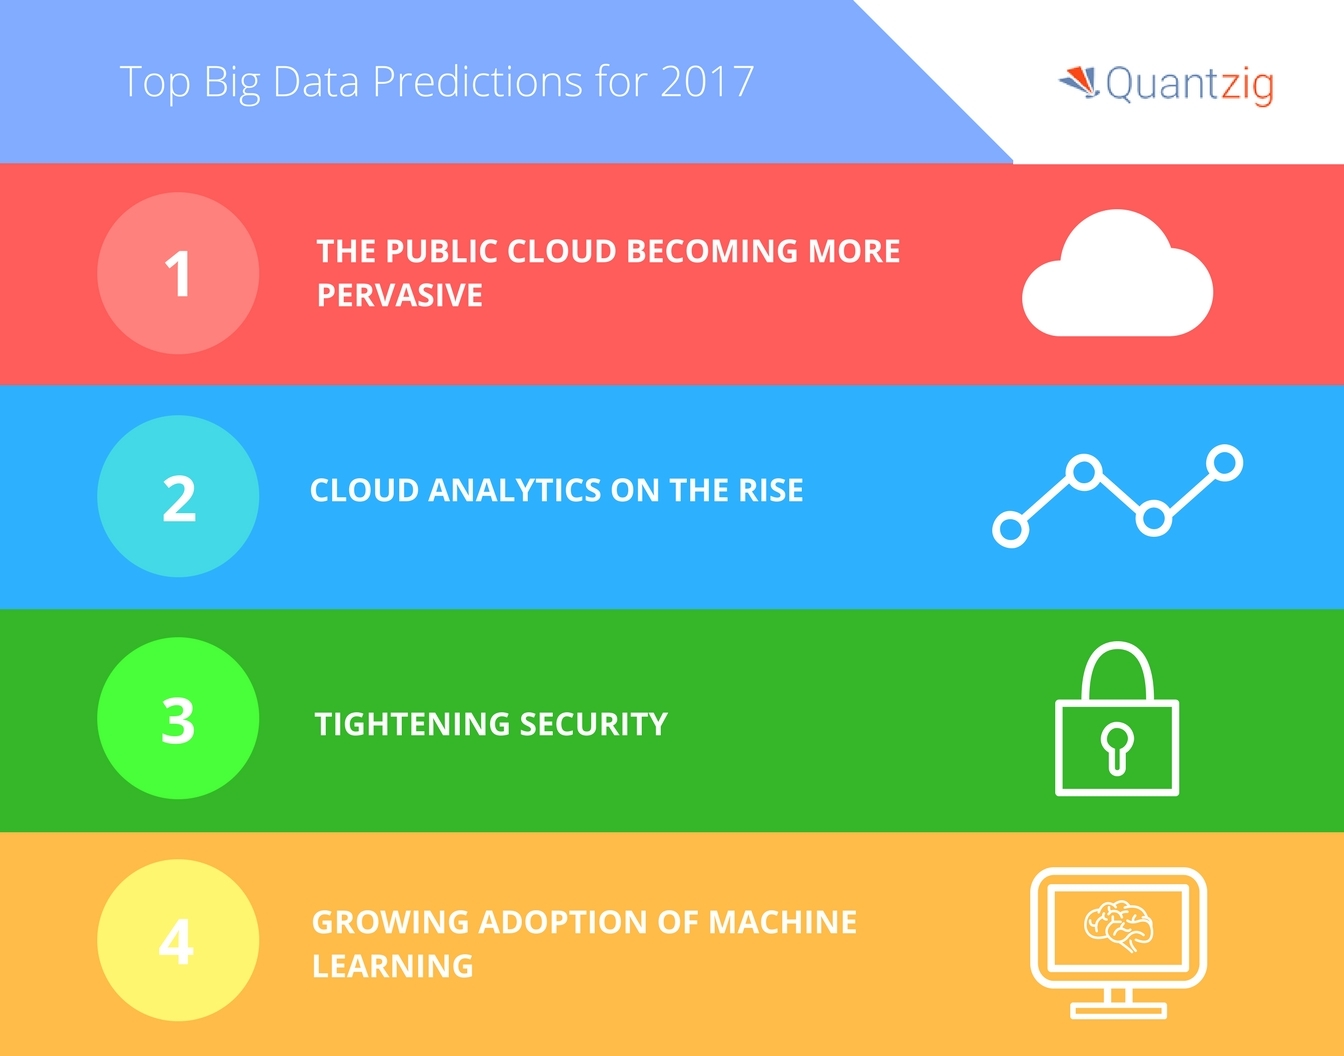 aff890427d7 Quantzig Announces Their Top Big Data Trends for 2017 | Business Wire